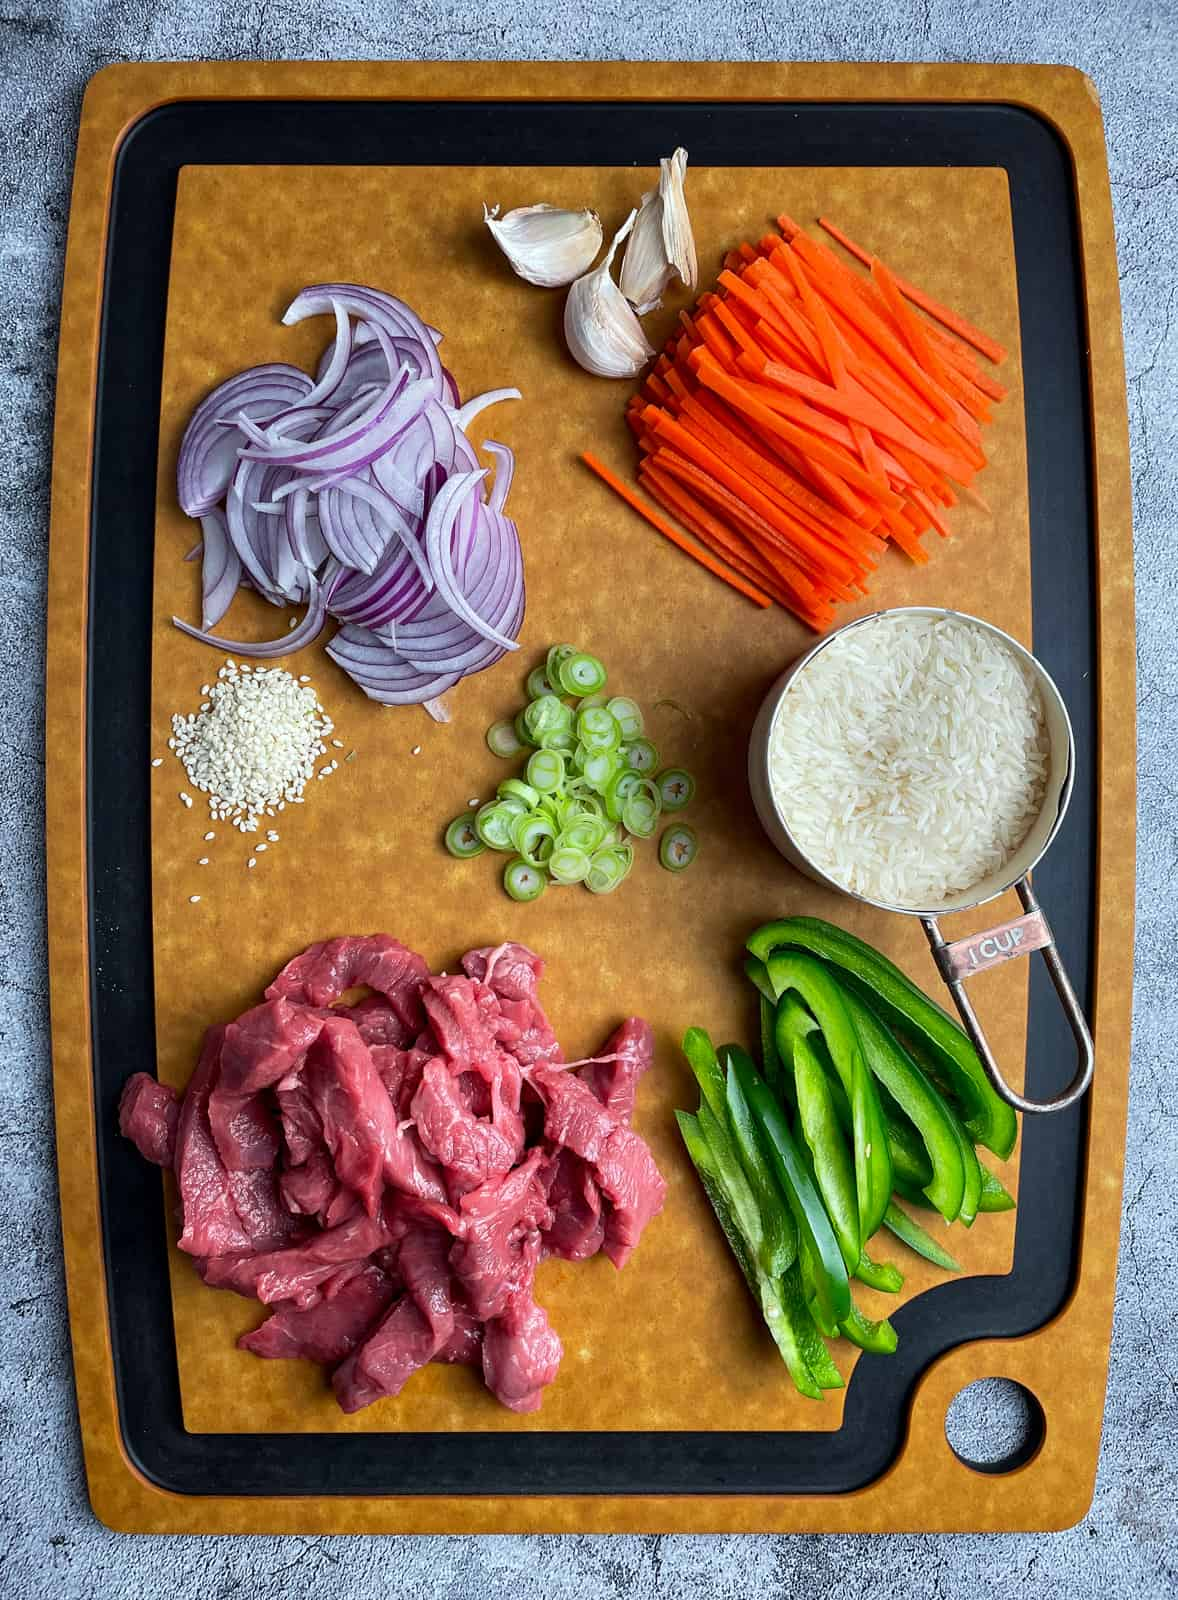 Chopped vegetables and beef on a chopping board